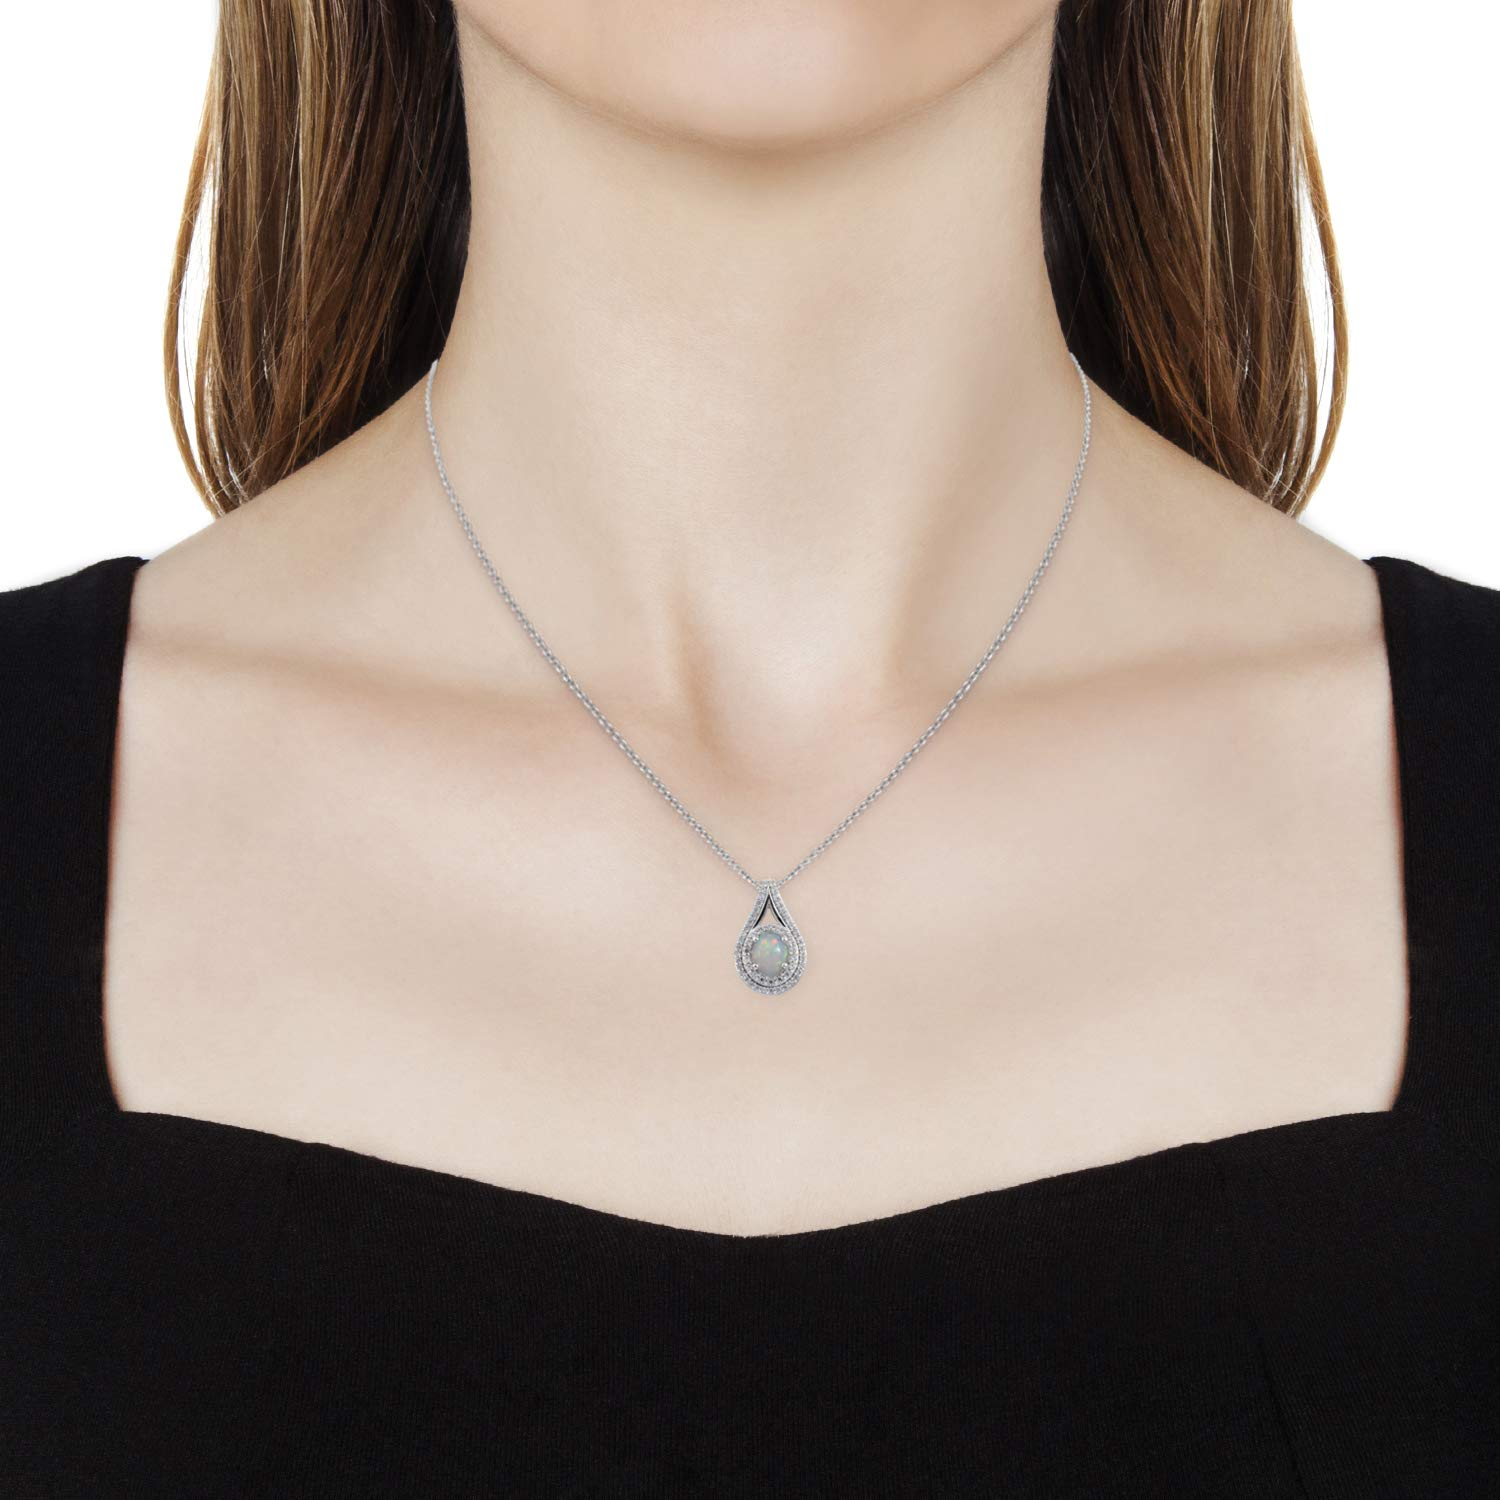 Welo Opal Zircon Pendant Necklace 20 in Platinum Over 925 Sterling Silver